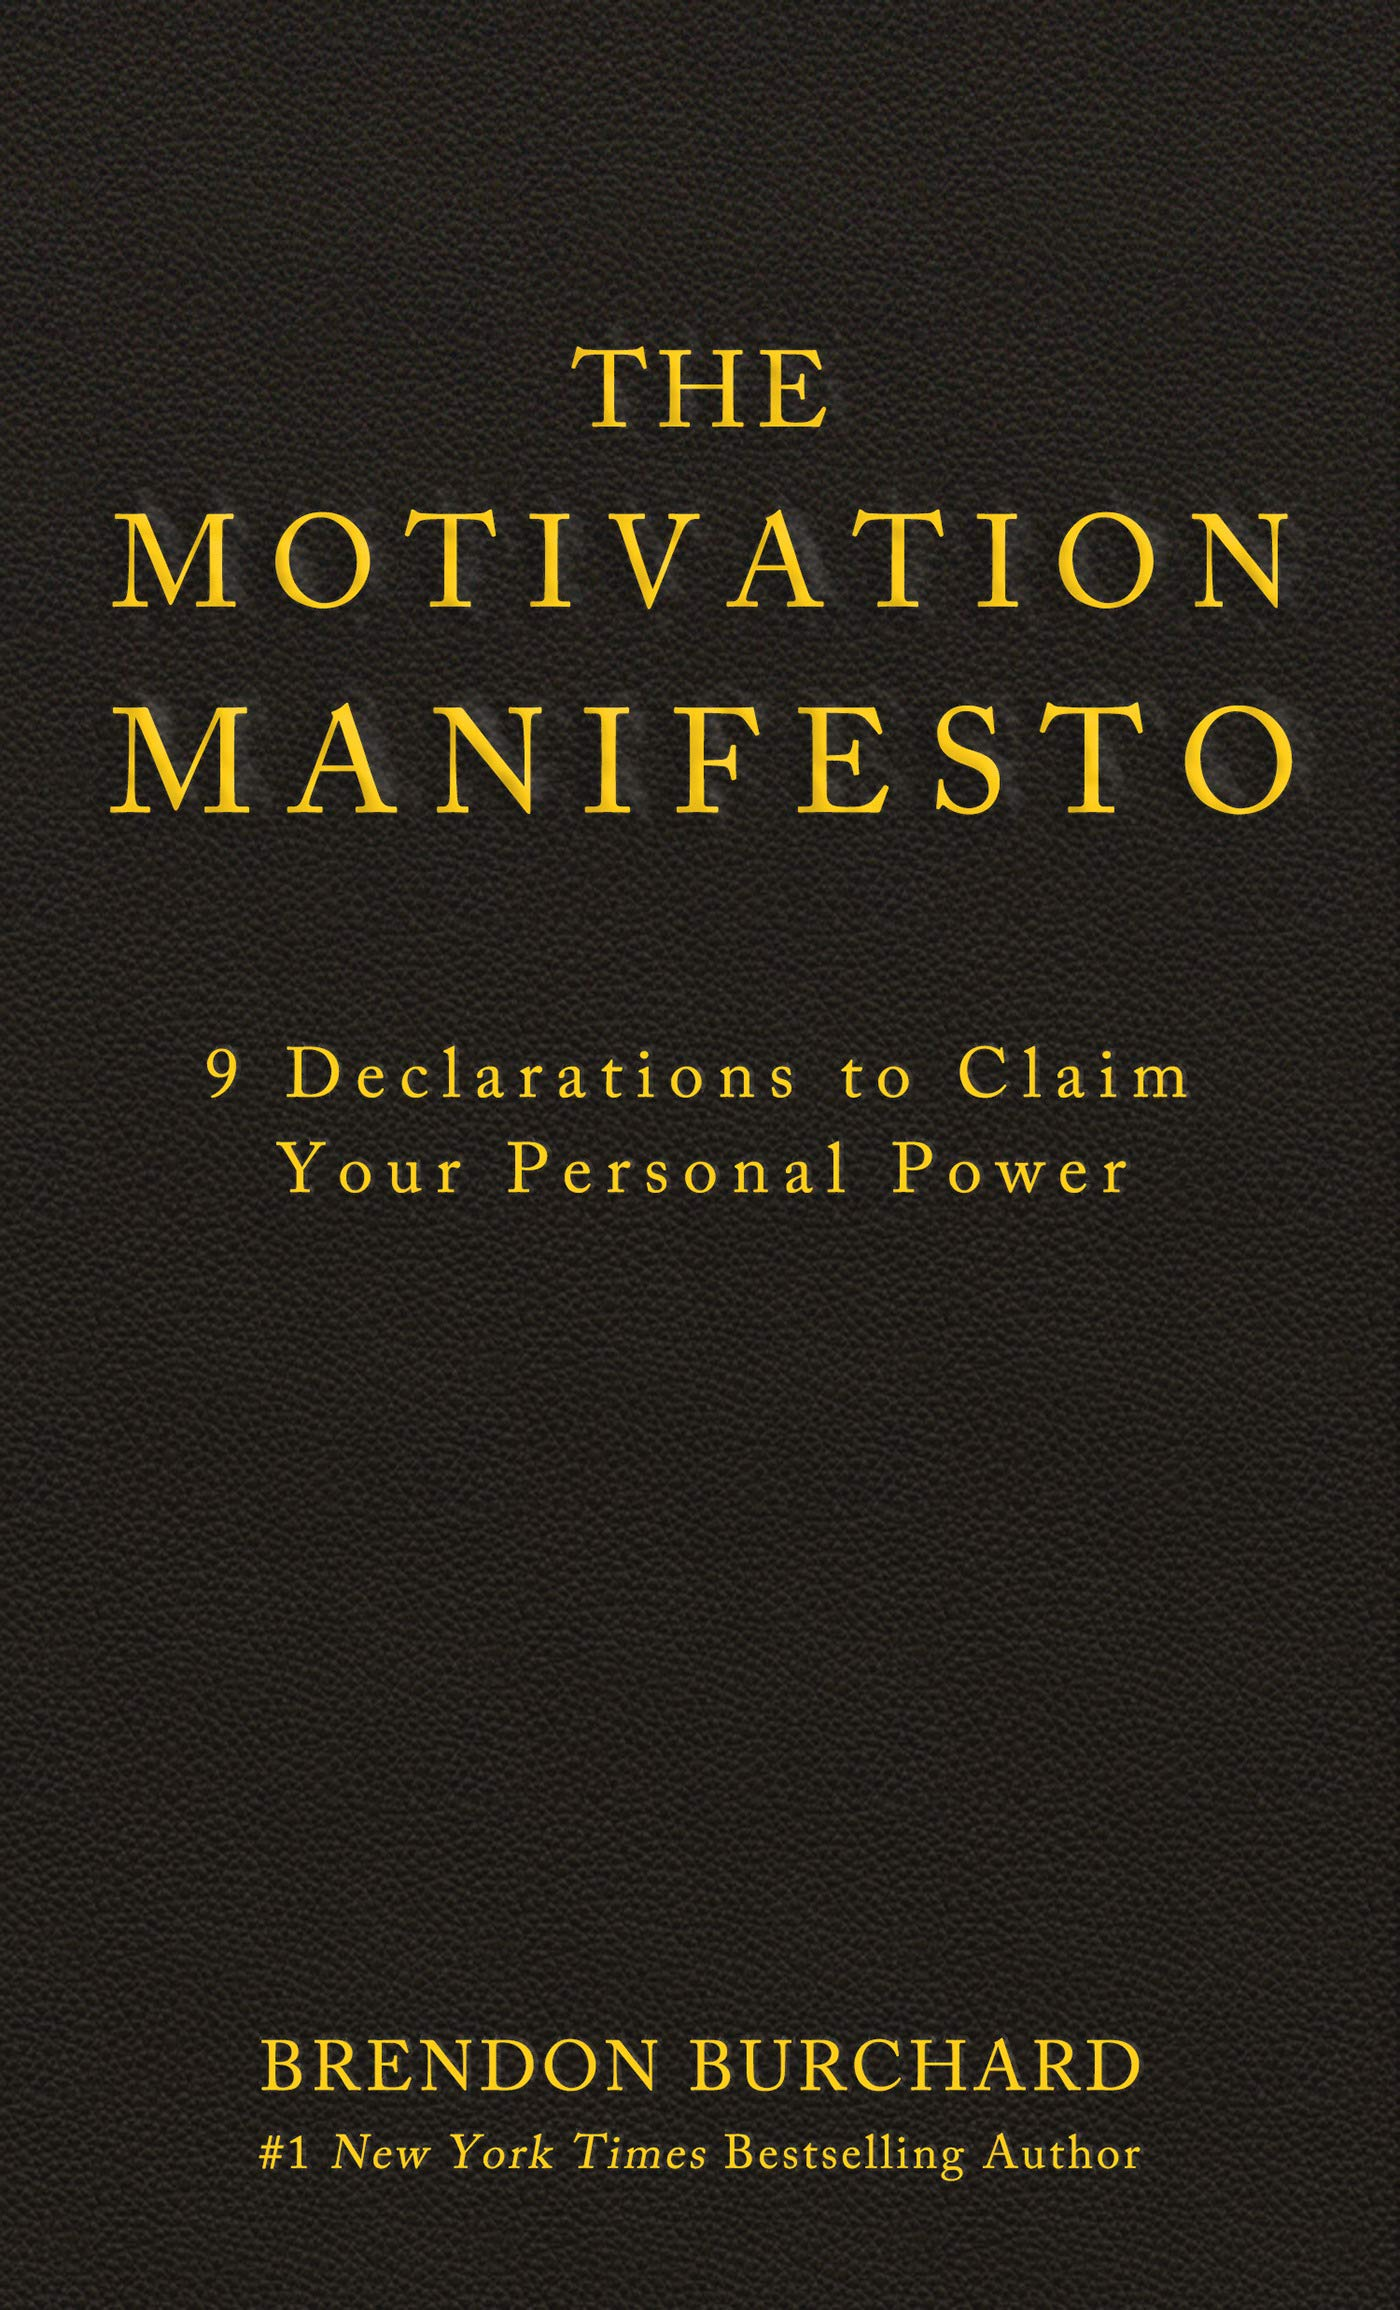 The Motivation Manifesto: 9 Declarations to Claim Your Personal Power